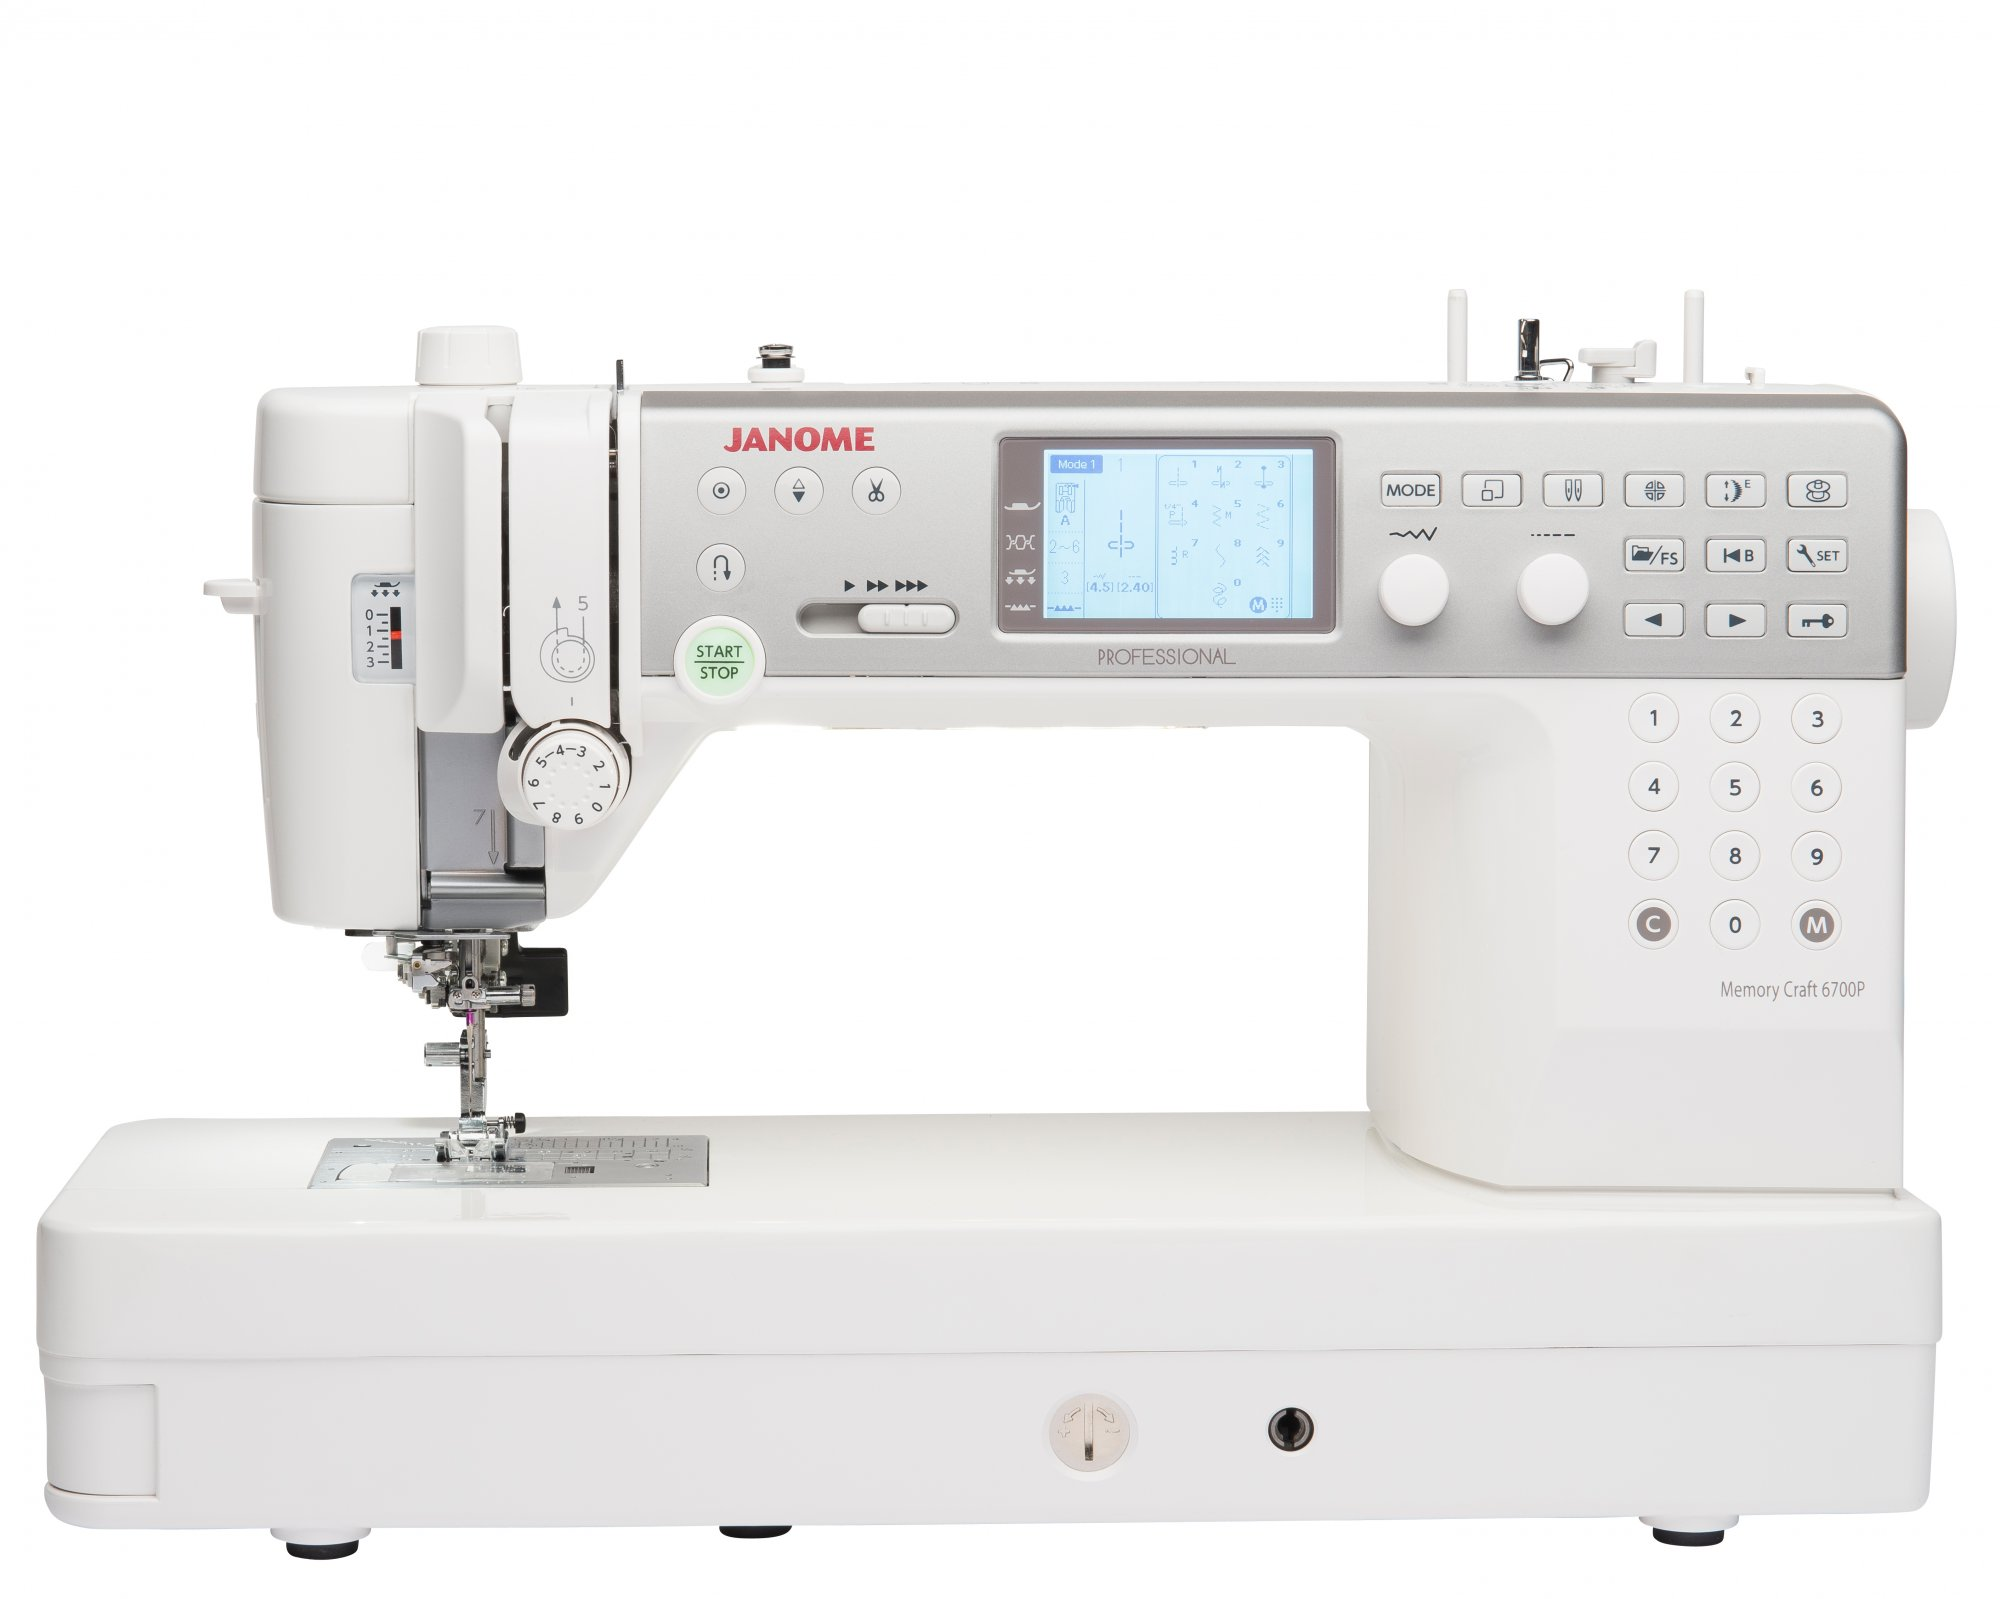 NEW! Janome Memory Craft 6700P